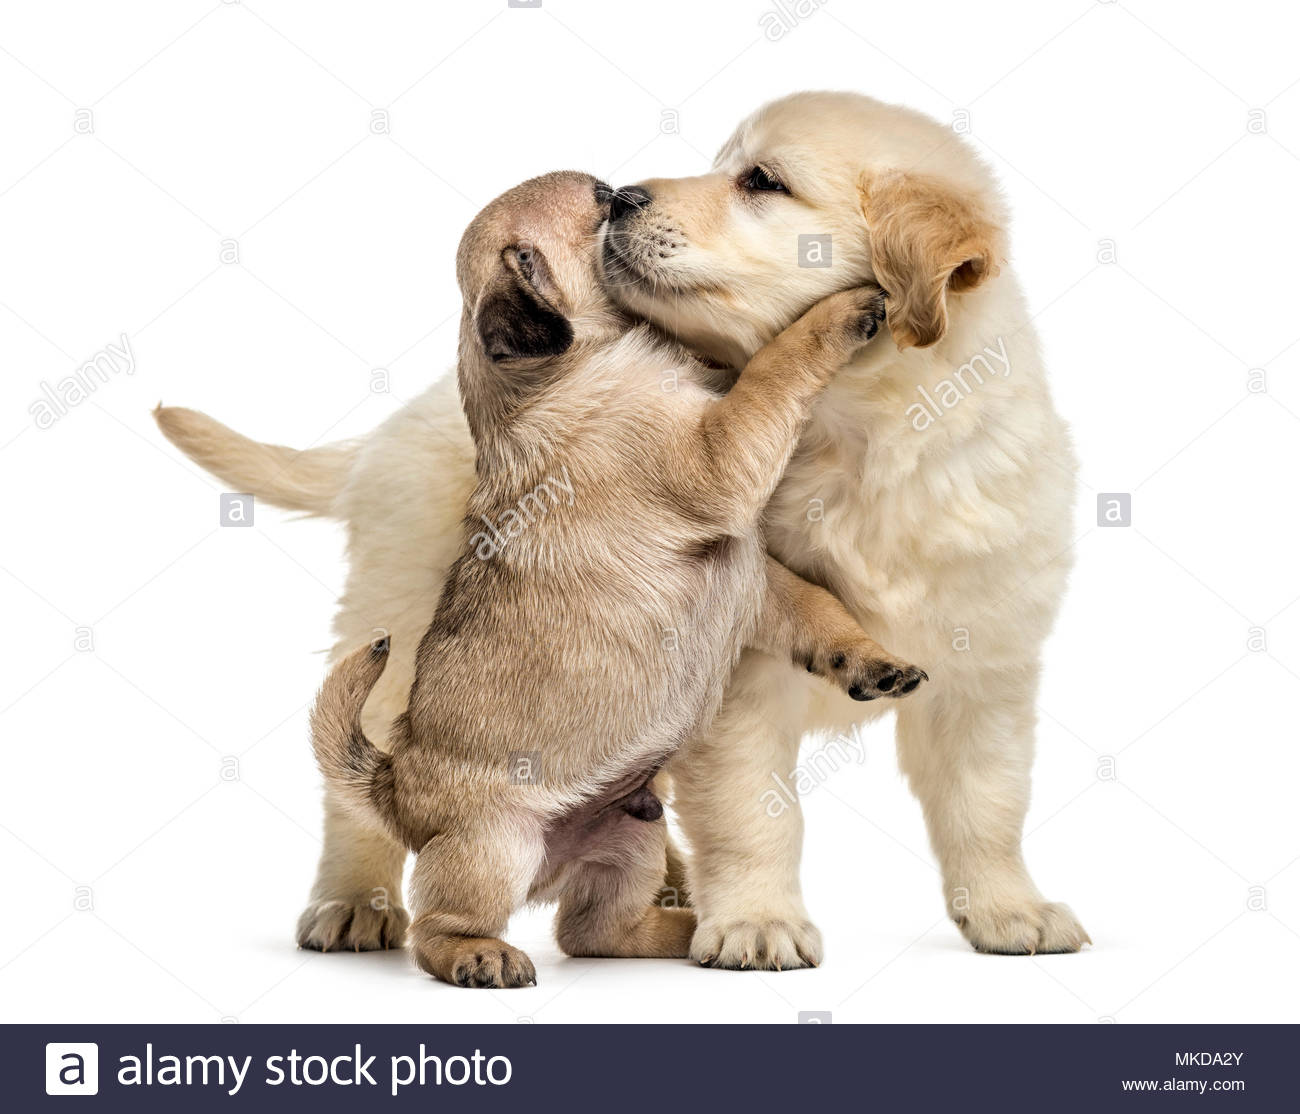 Retriever and pug puppies playing together, isolated on white background Stock Photo